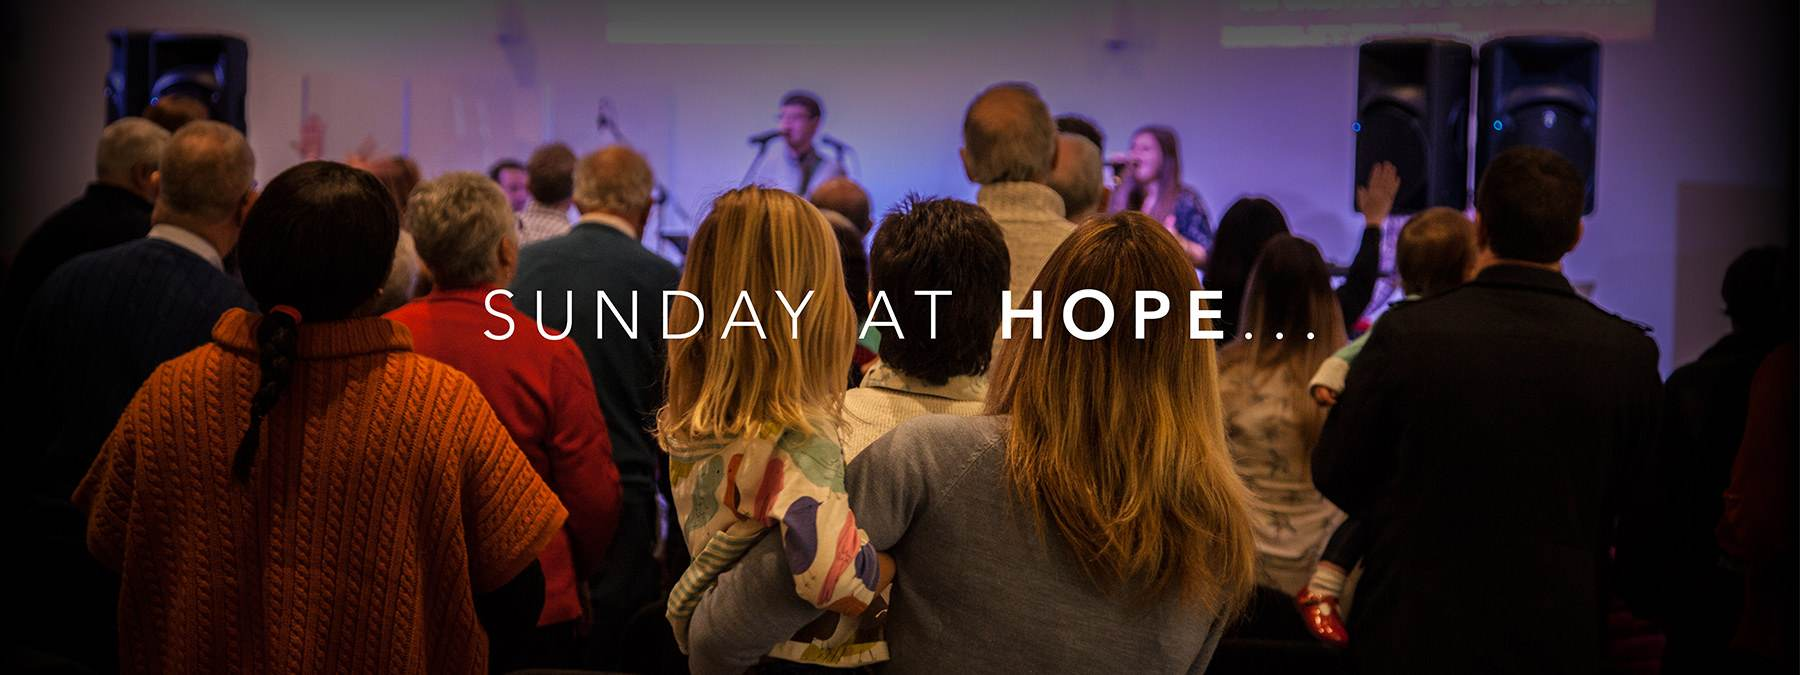 Sunday at Hope...